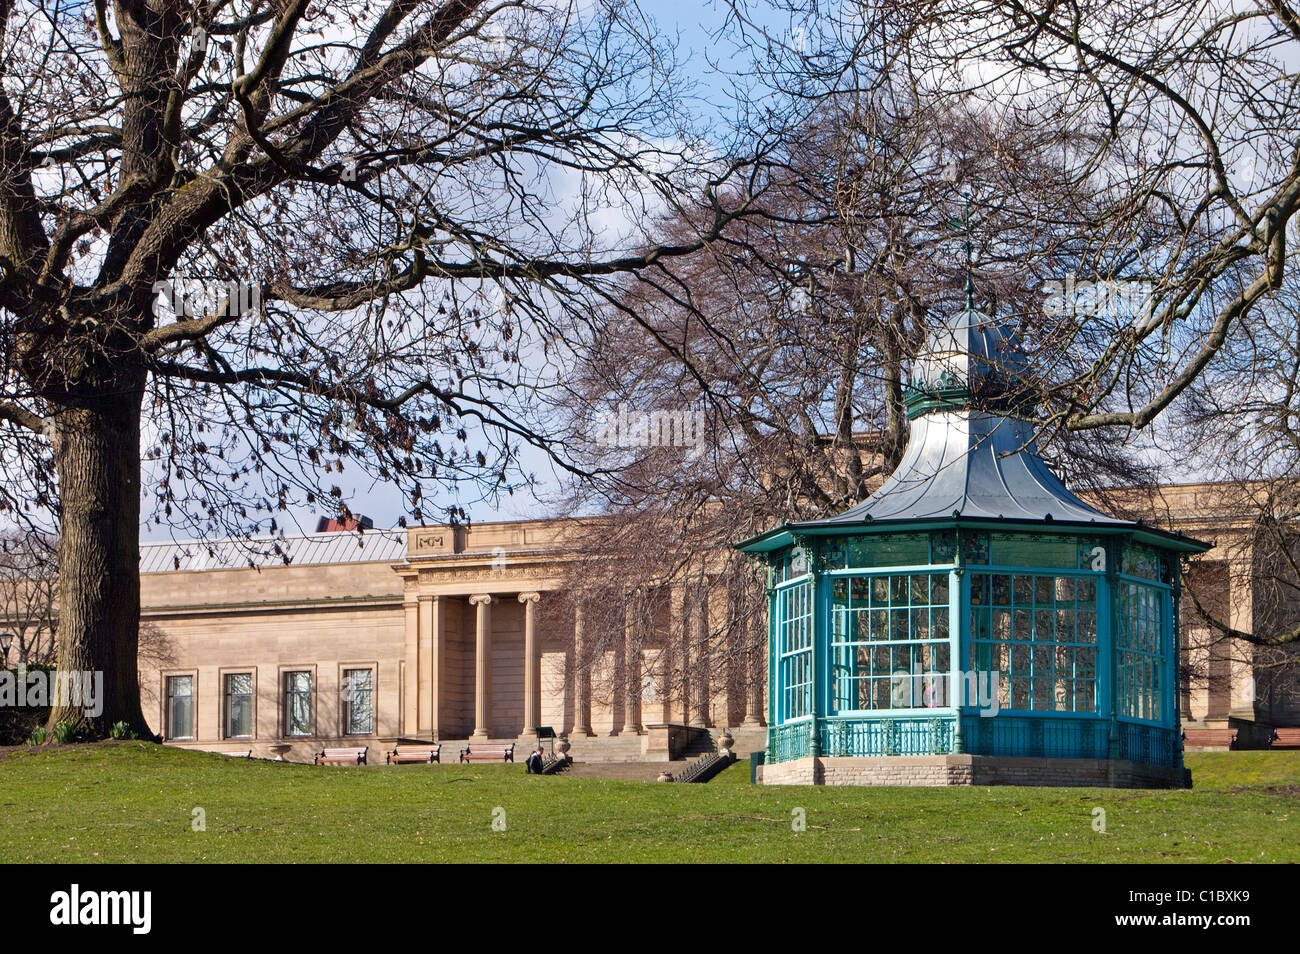 Weston Park Museum and Bandstand Sheffield - Stock Image